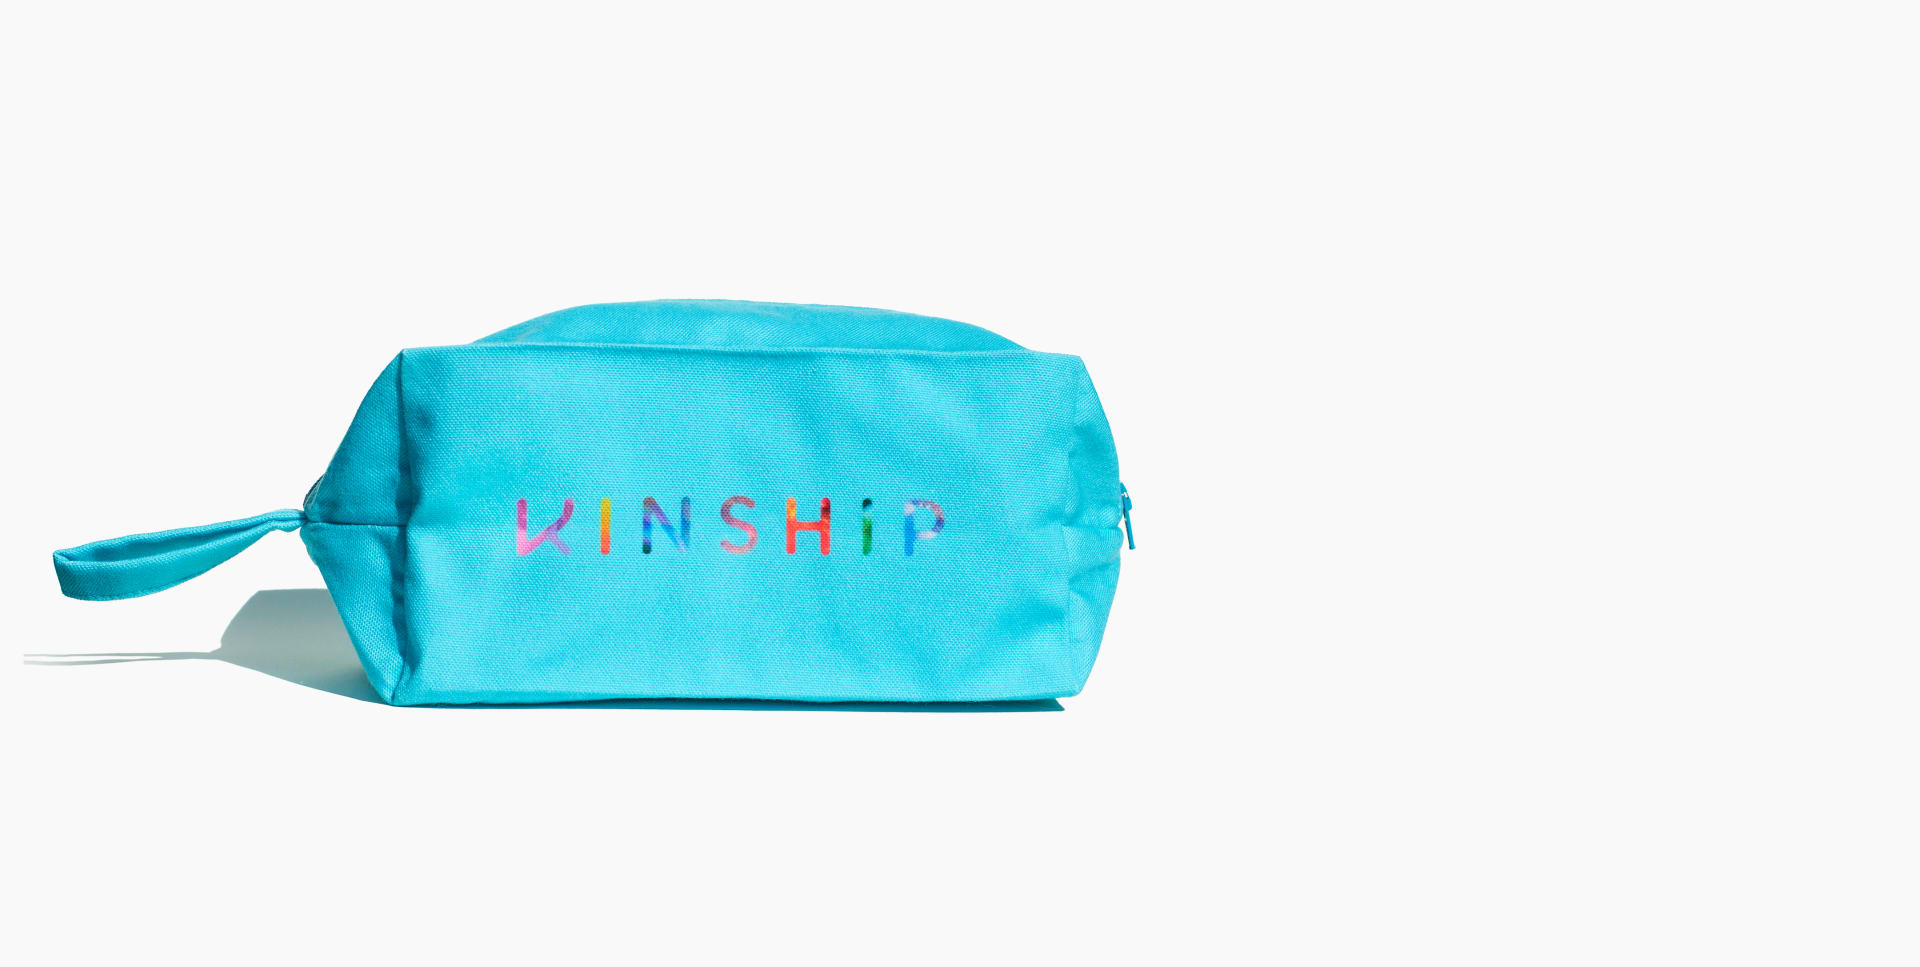 Sky blue dopp kit with Kinship multi-color logo, front facing